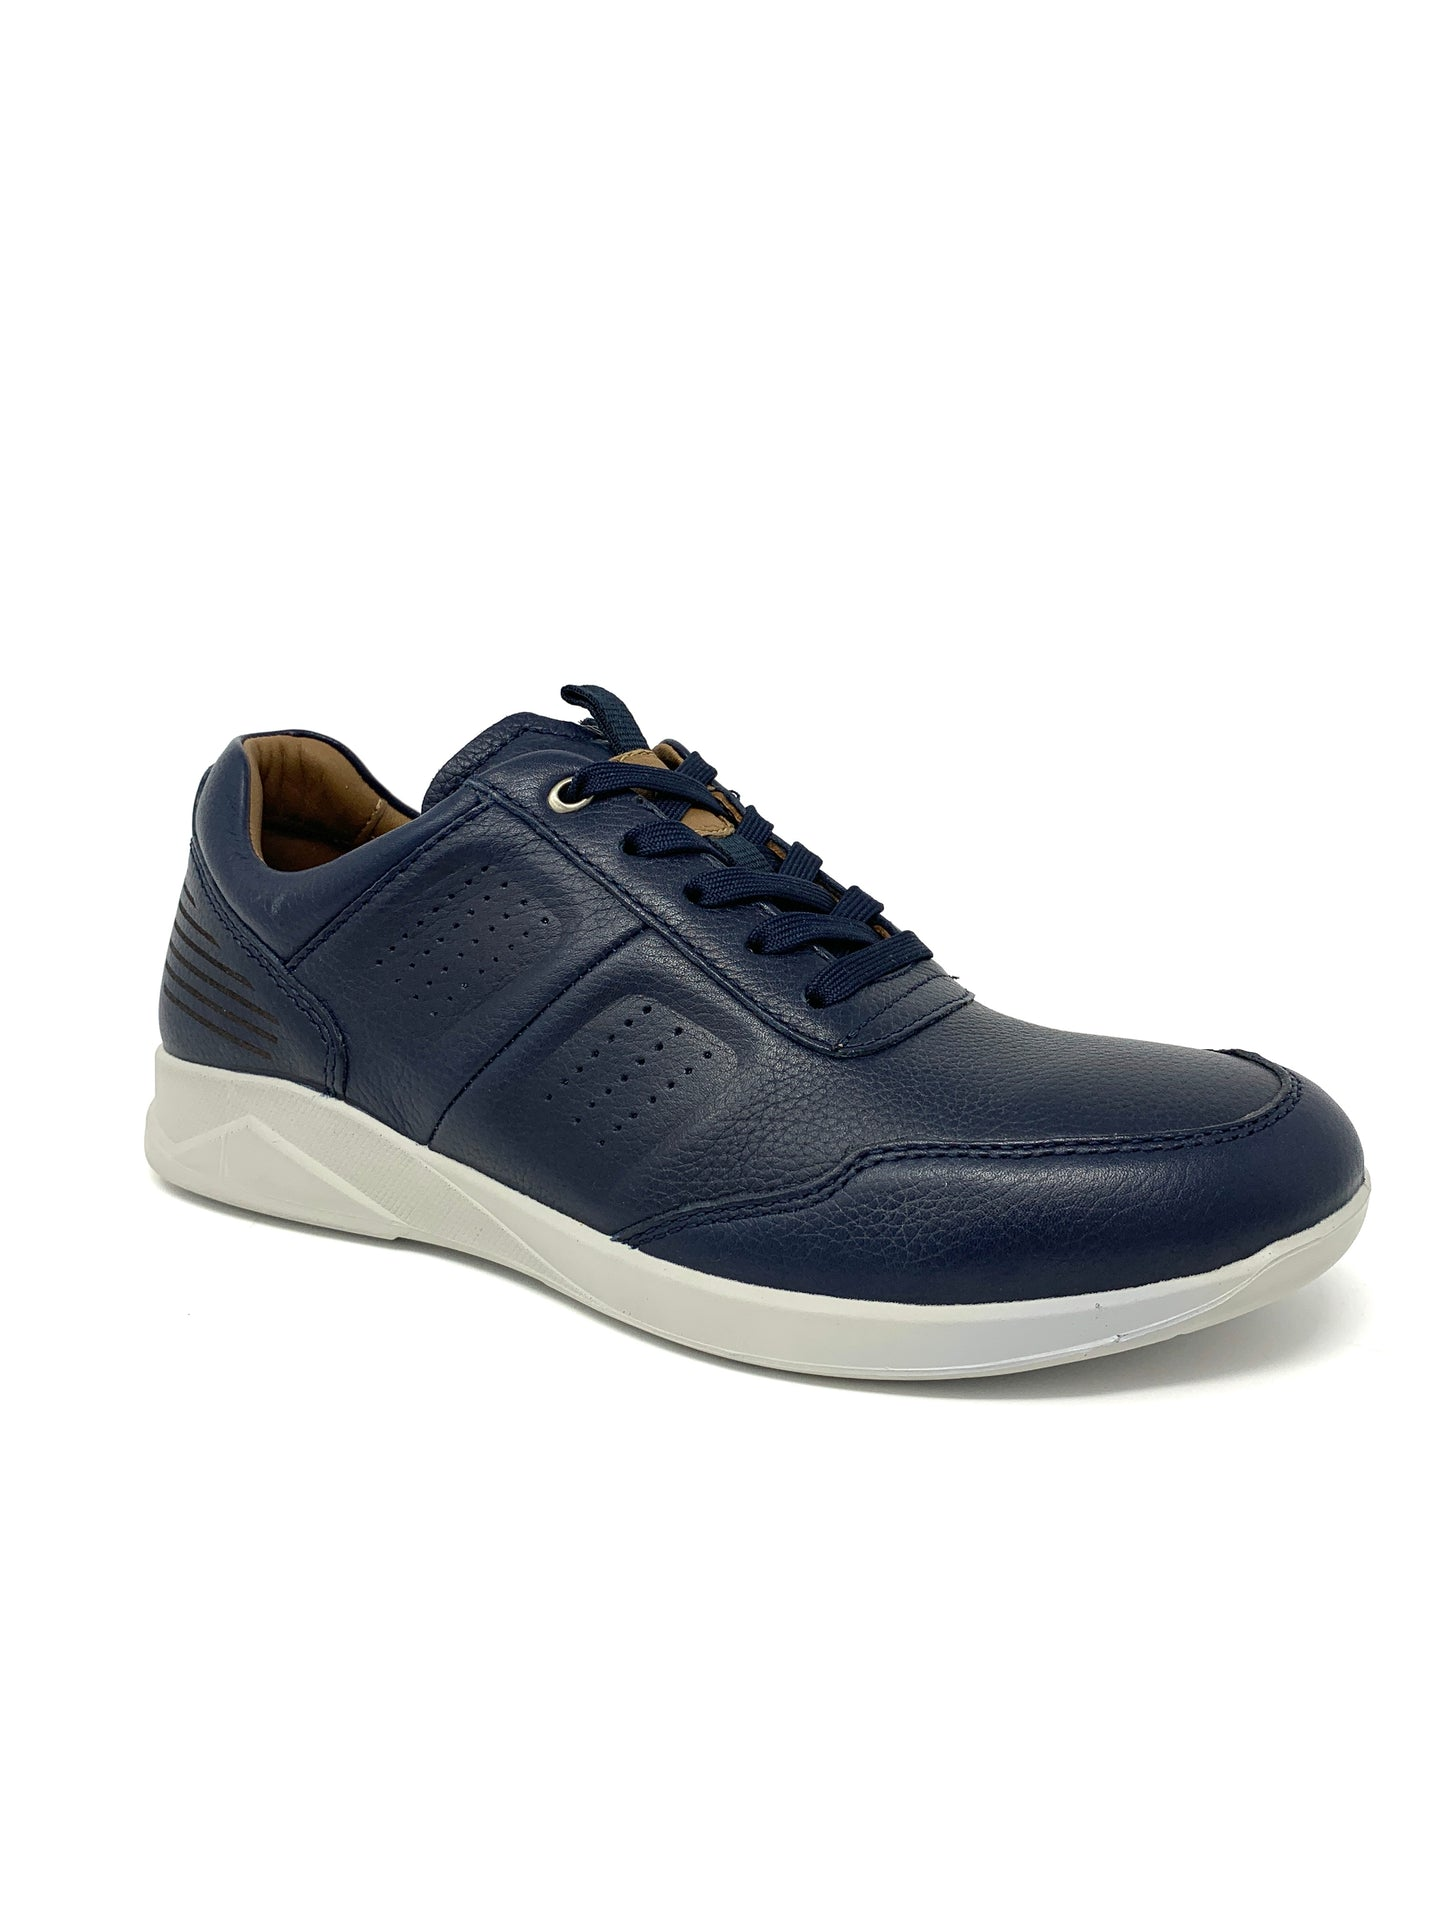 Blue Leather Trainers with Grey Sole